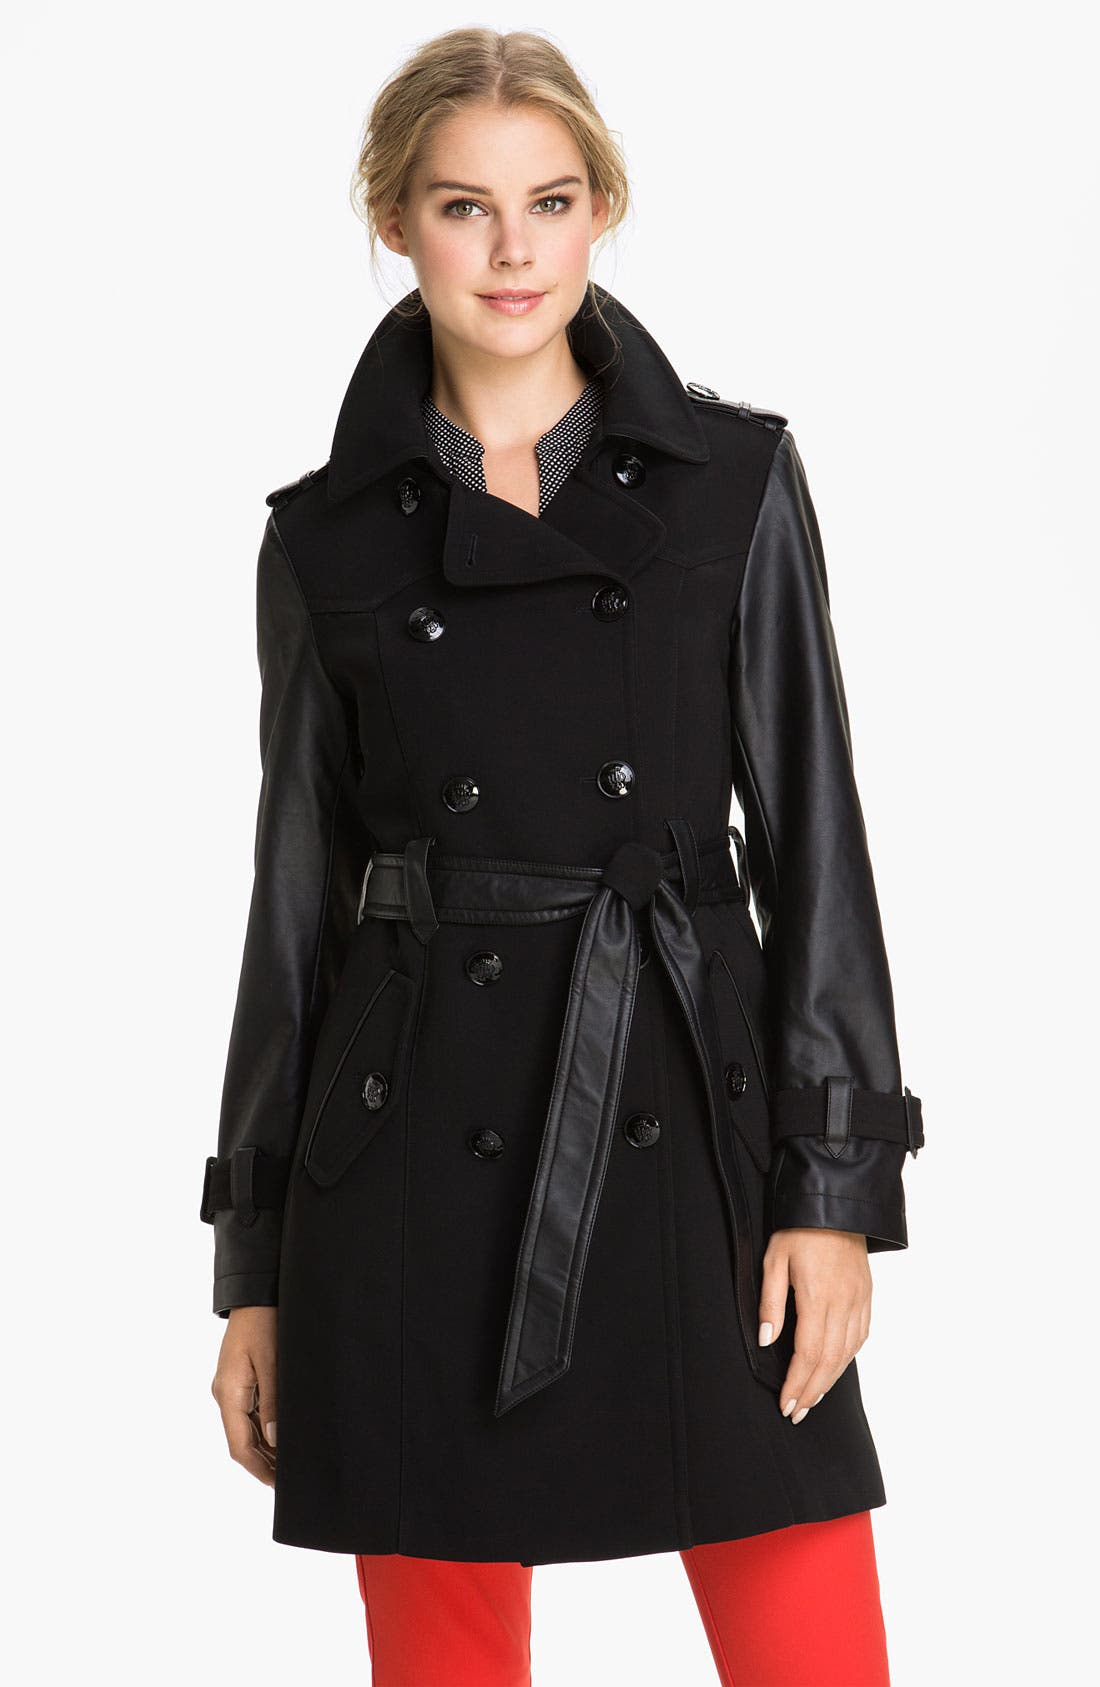 Alternate Image 1 Selected - 1 Madison Faux Leather Sleeve Trench Coat